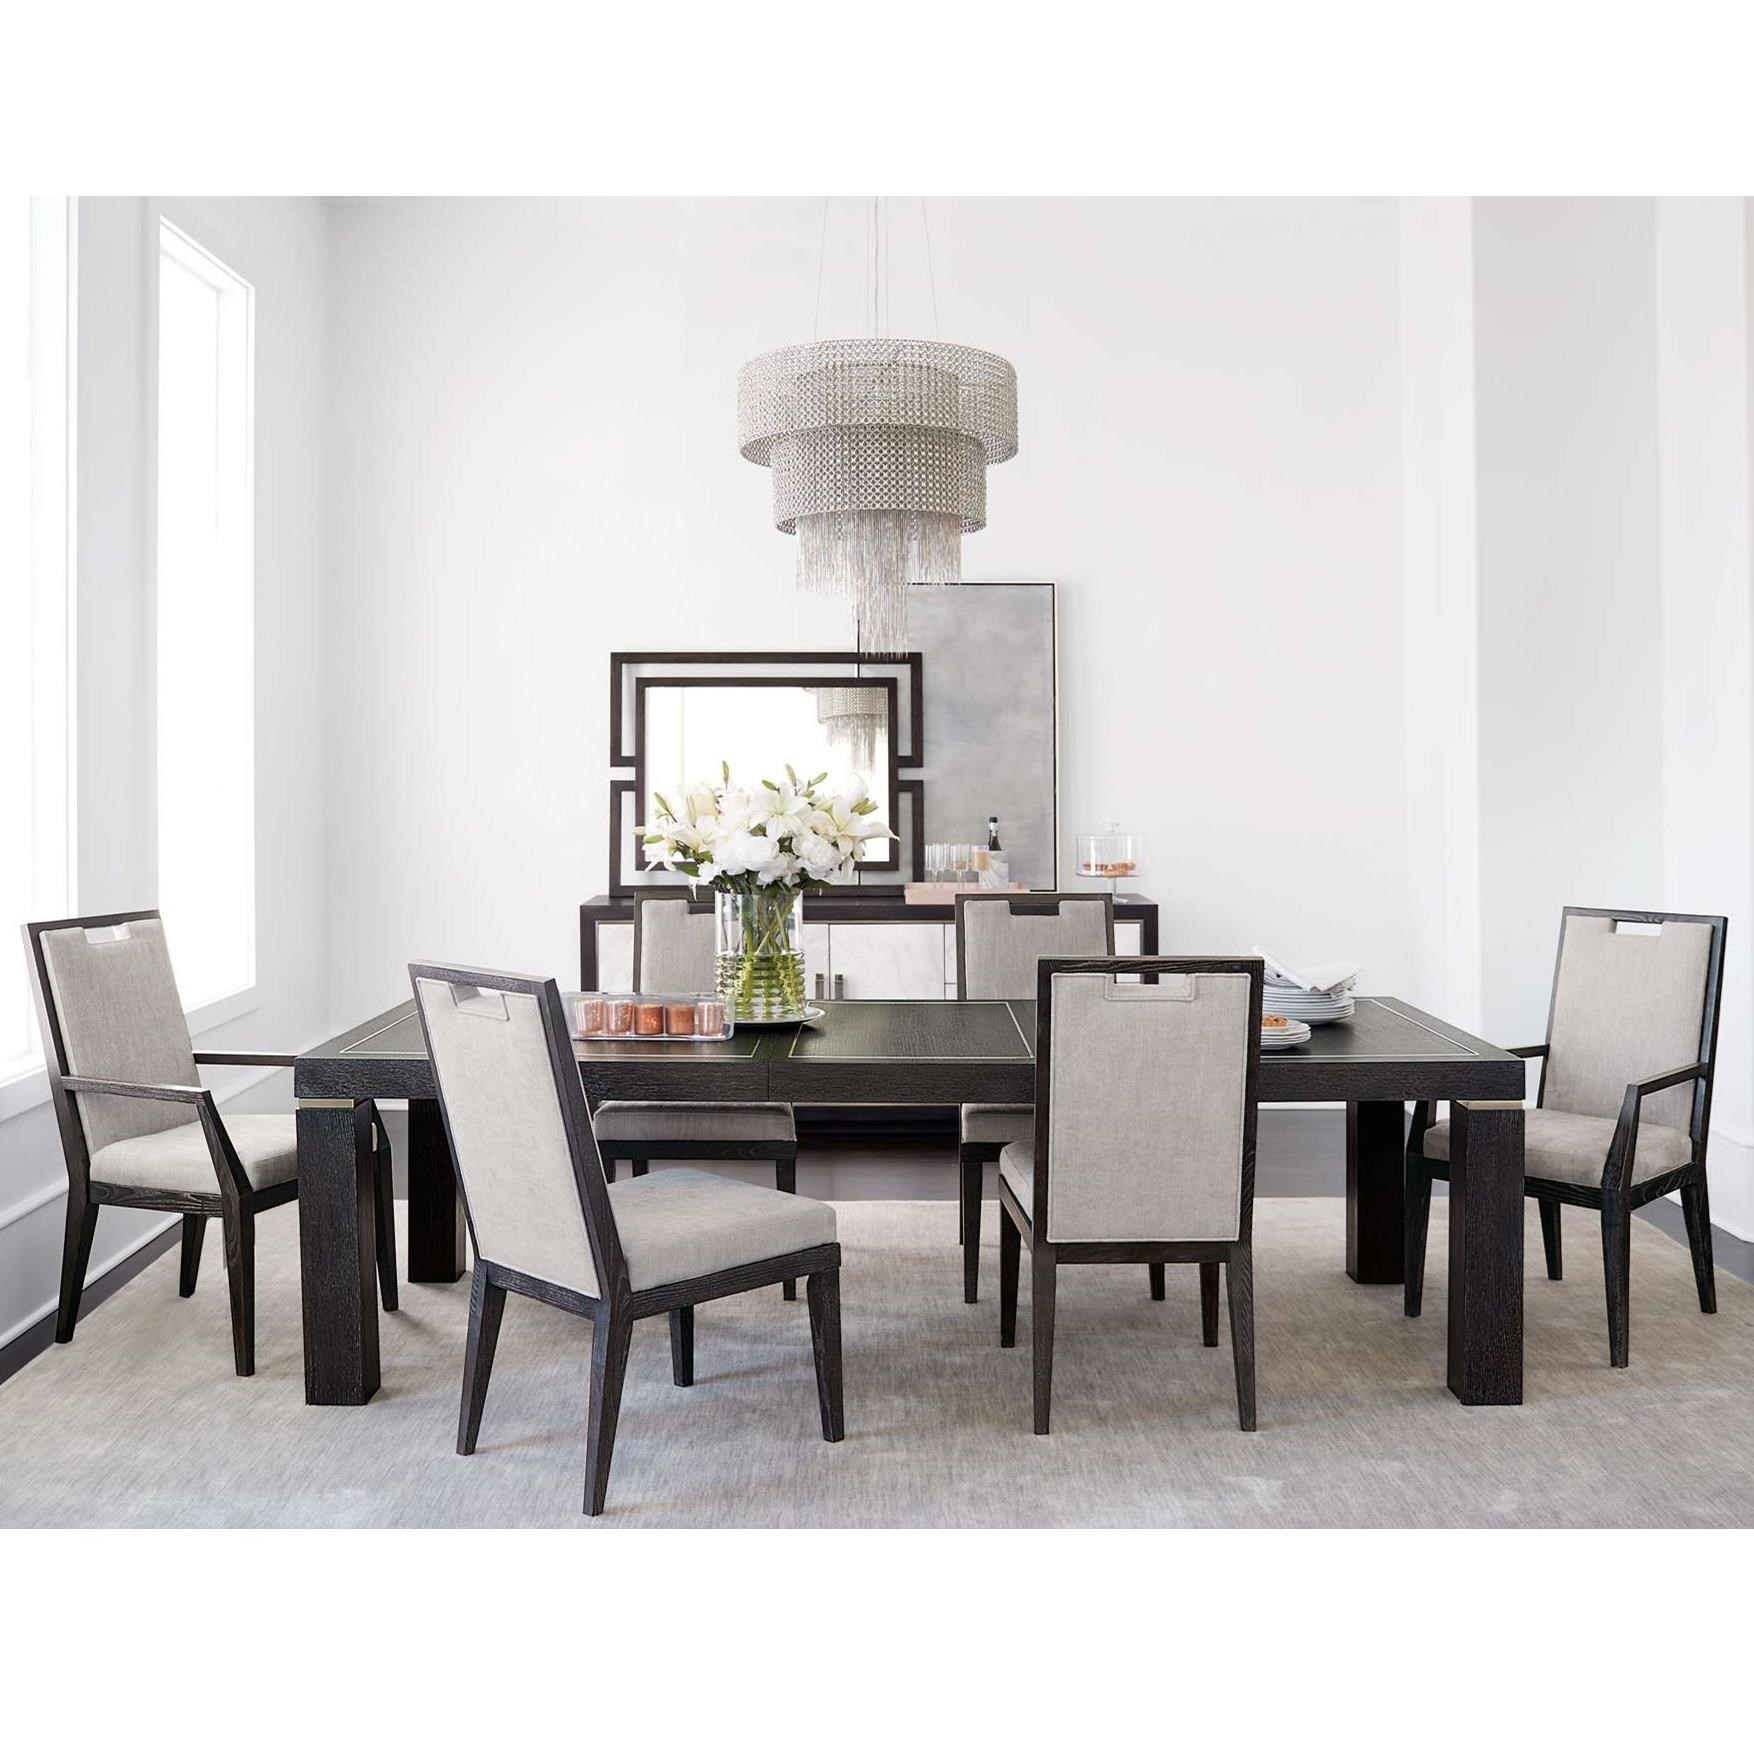 Decorage 7 Piece Table and Chair Set by Bernhardt at Baer's Furniture